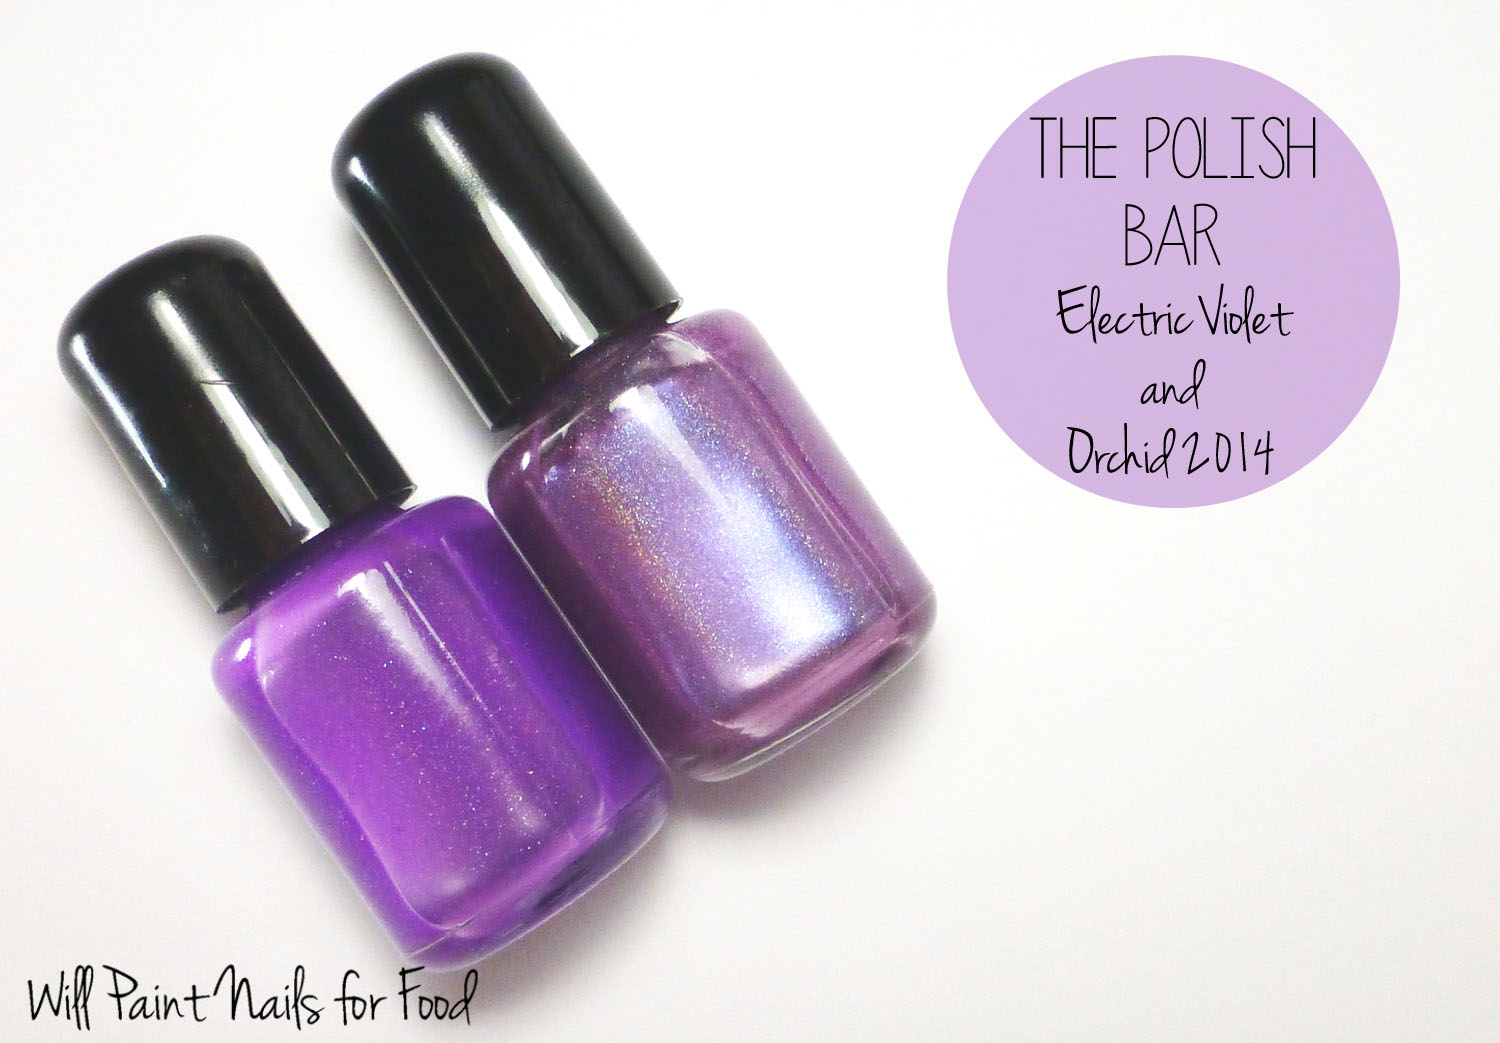 The Polish Bar Electric Violet and Orchid 2014